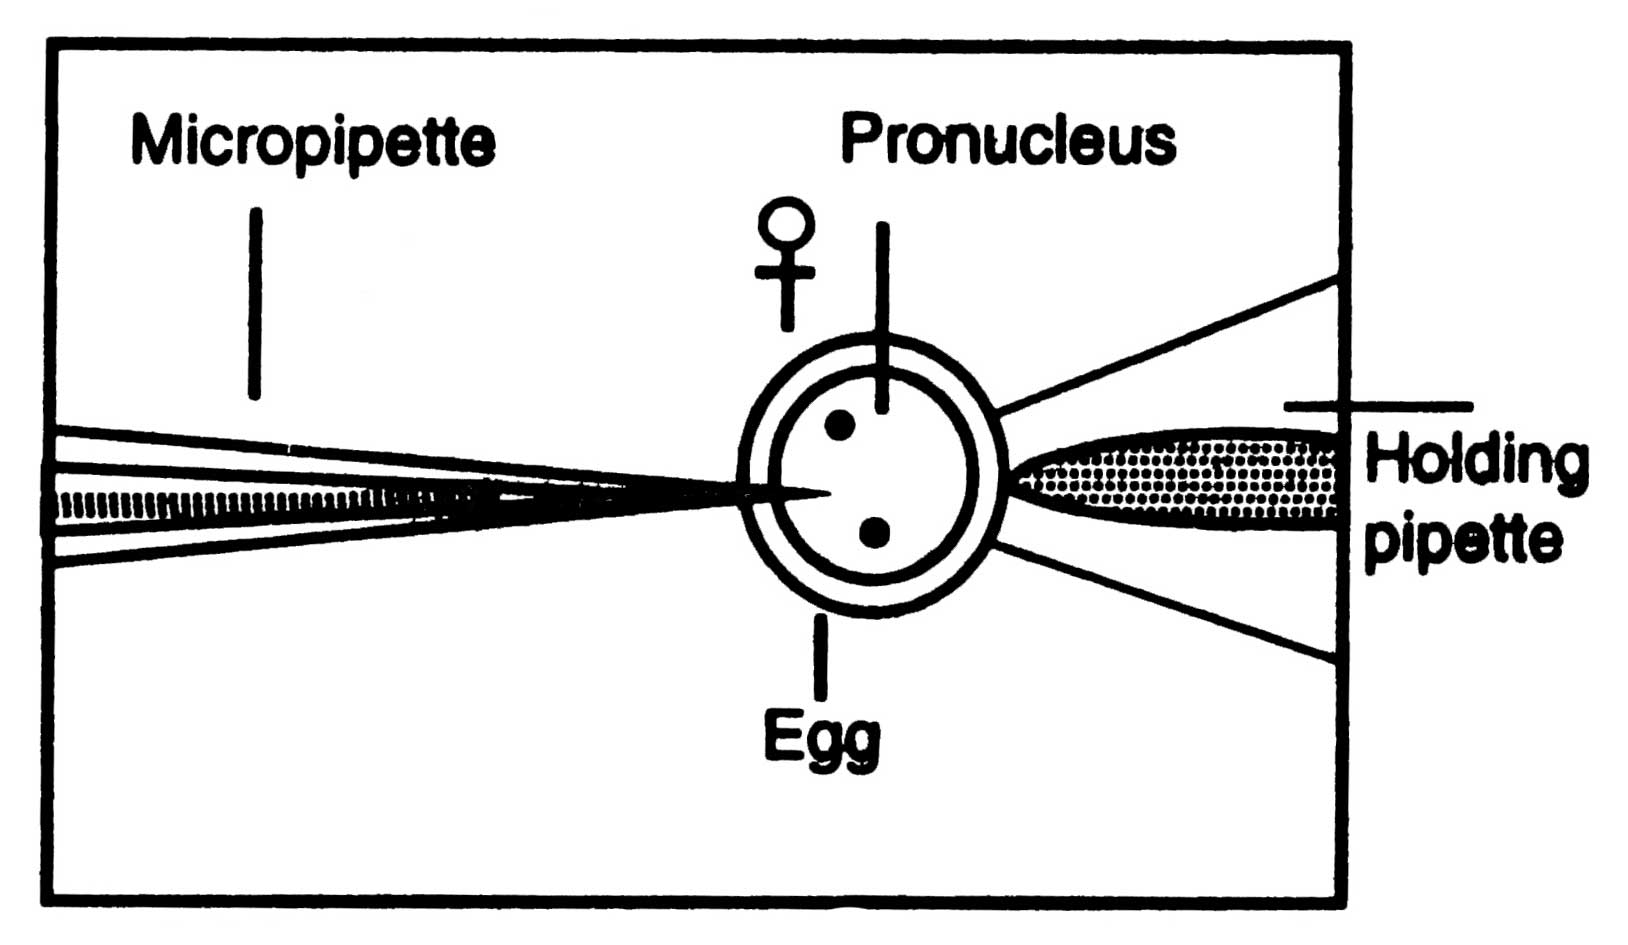 Microinjection Genetic Engineering Technique Diagram A Method Of Dna Preparation In Egg